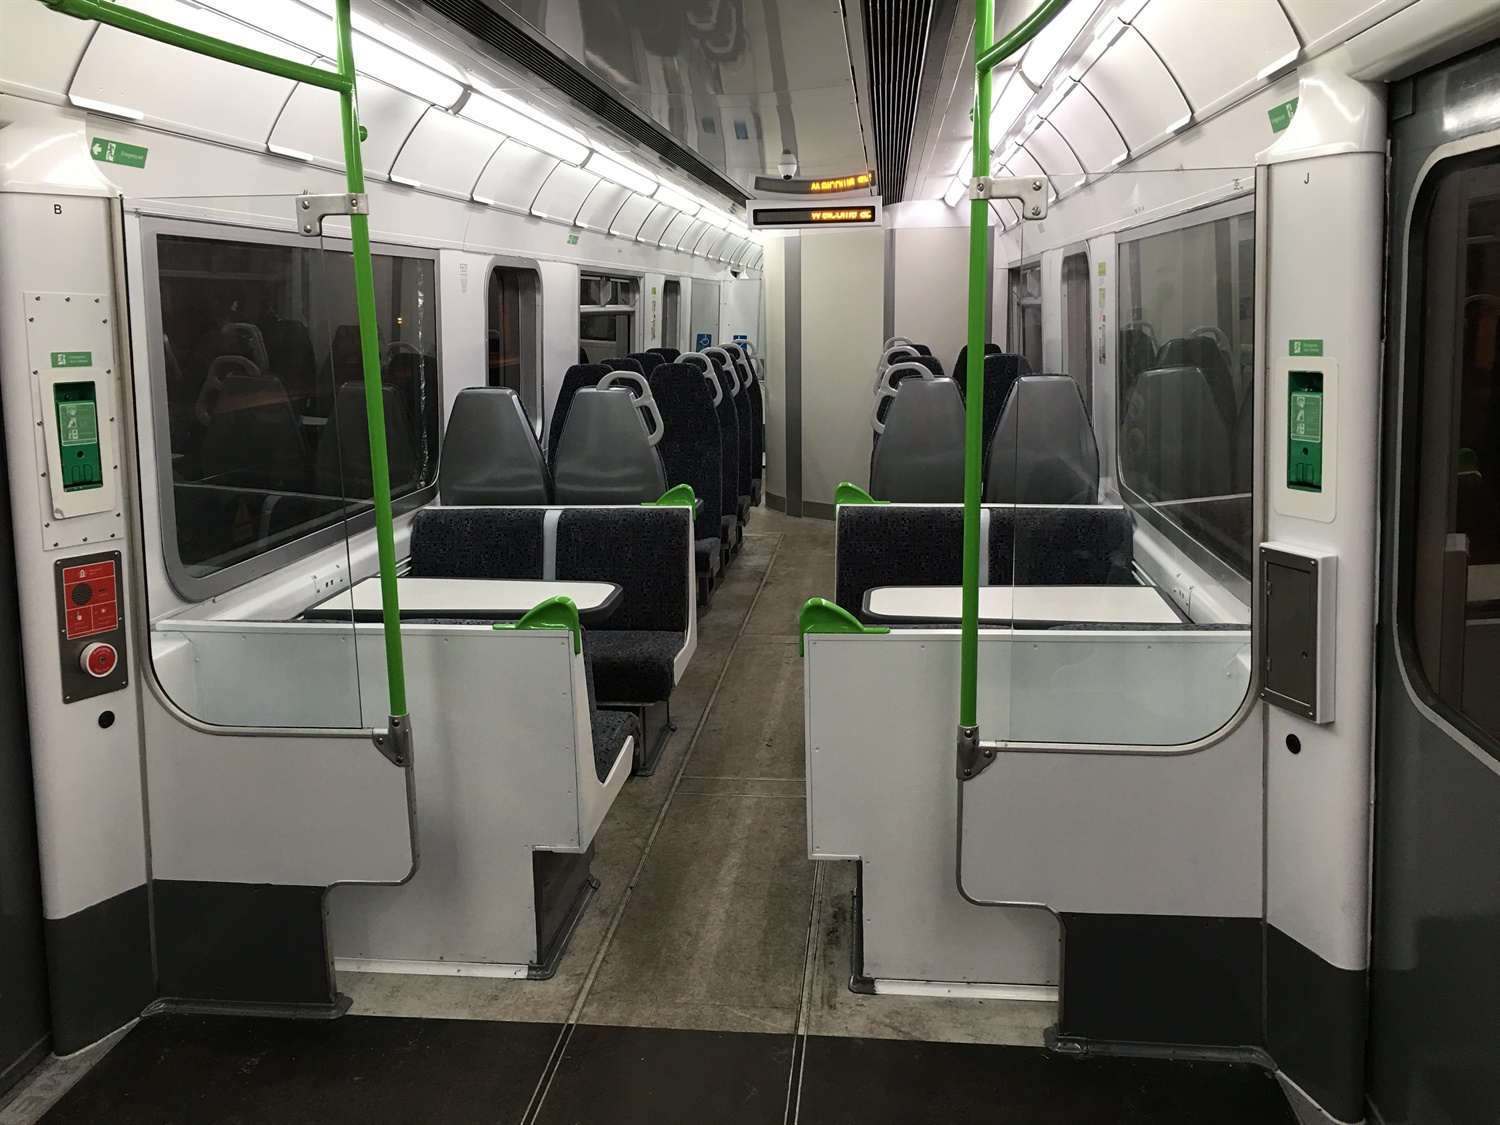 d-train middle car interior finished